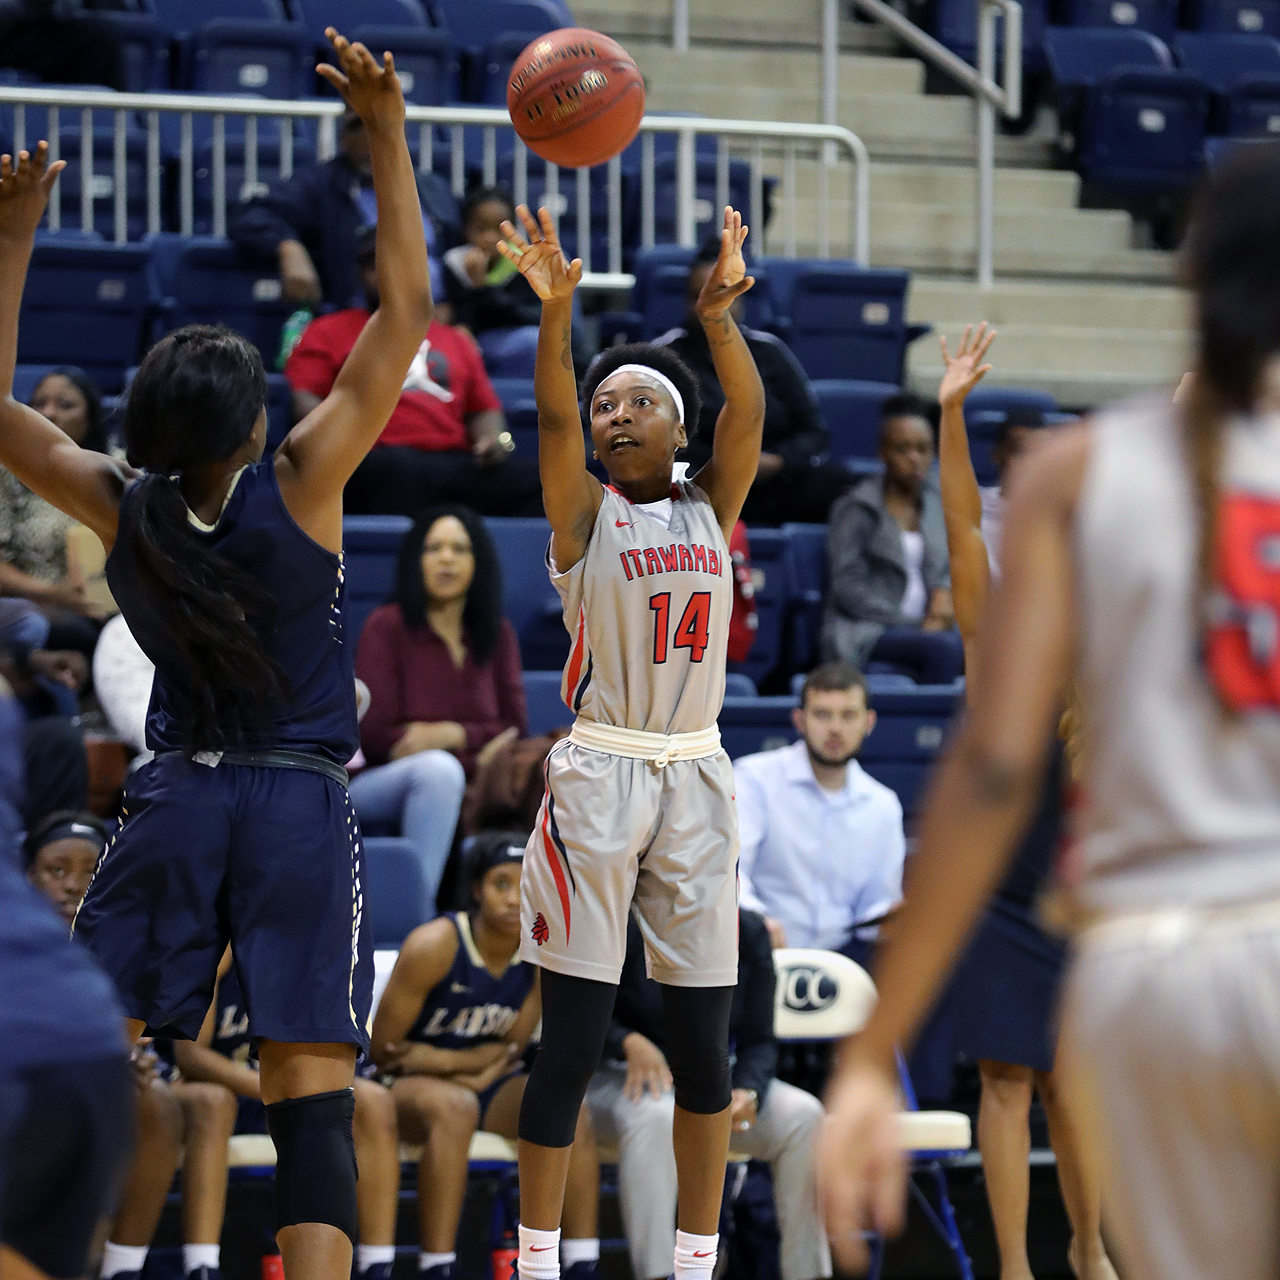 Lady Indians race to 78-57 win over Lawson State